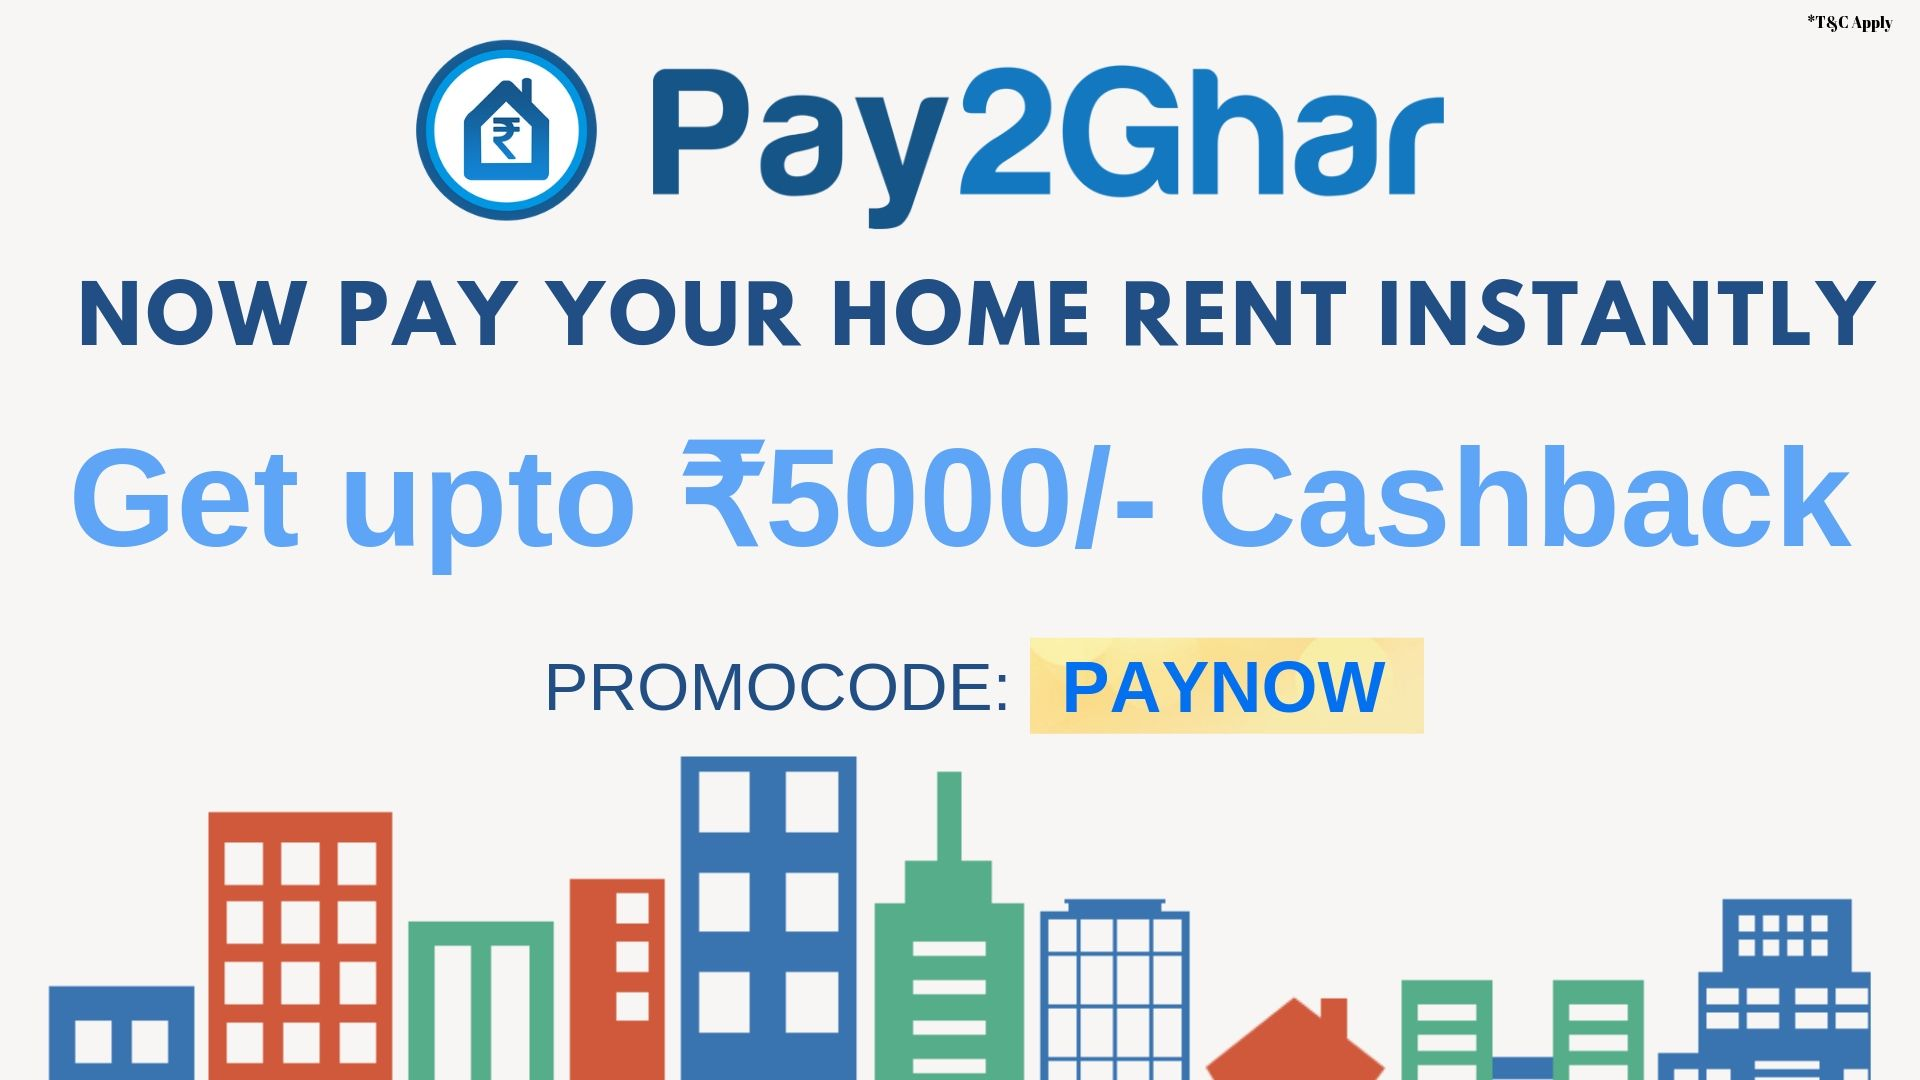 Pay Your Rent Hassle Free With Pay2ghar S Instant Payment Earn Cashback And Scratchcards On Every Rent Paymnet Downlo Rent Cashback